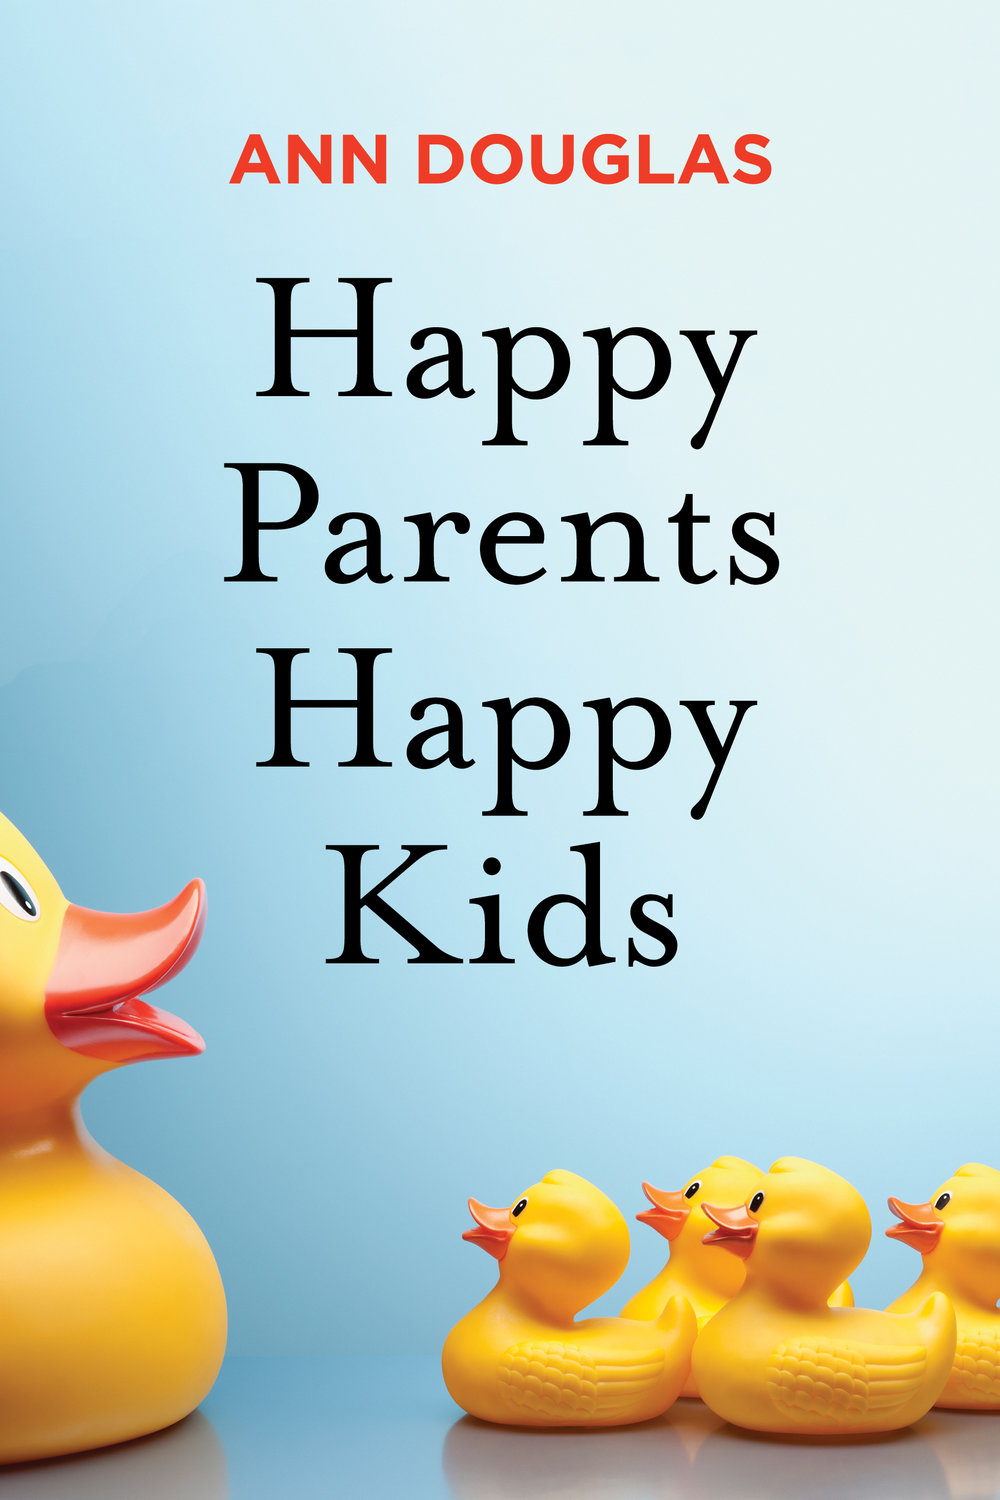 Happy Parents Happy Kids will be published by HarperCollins Canada on February 19, 2019.